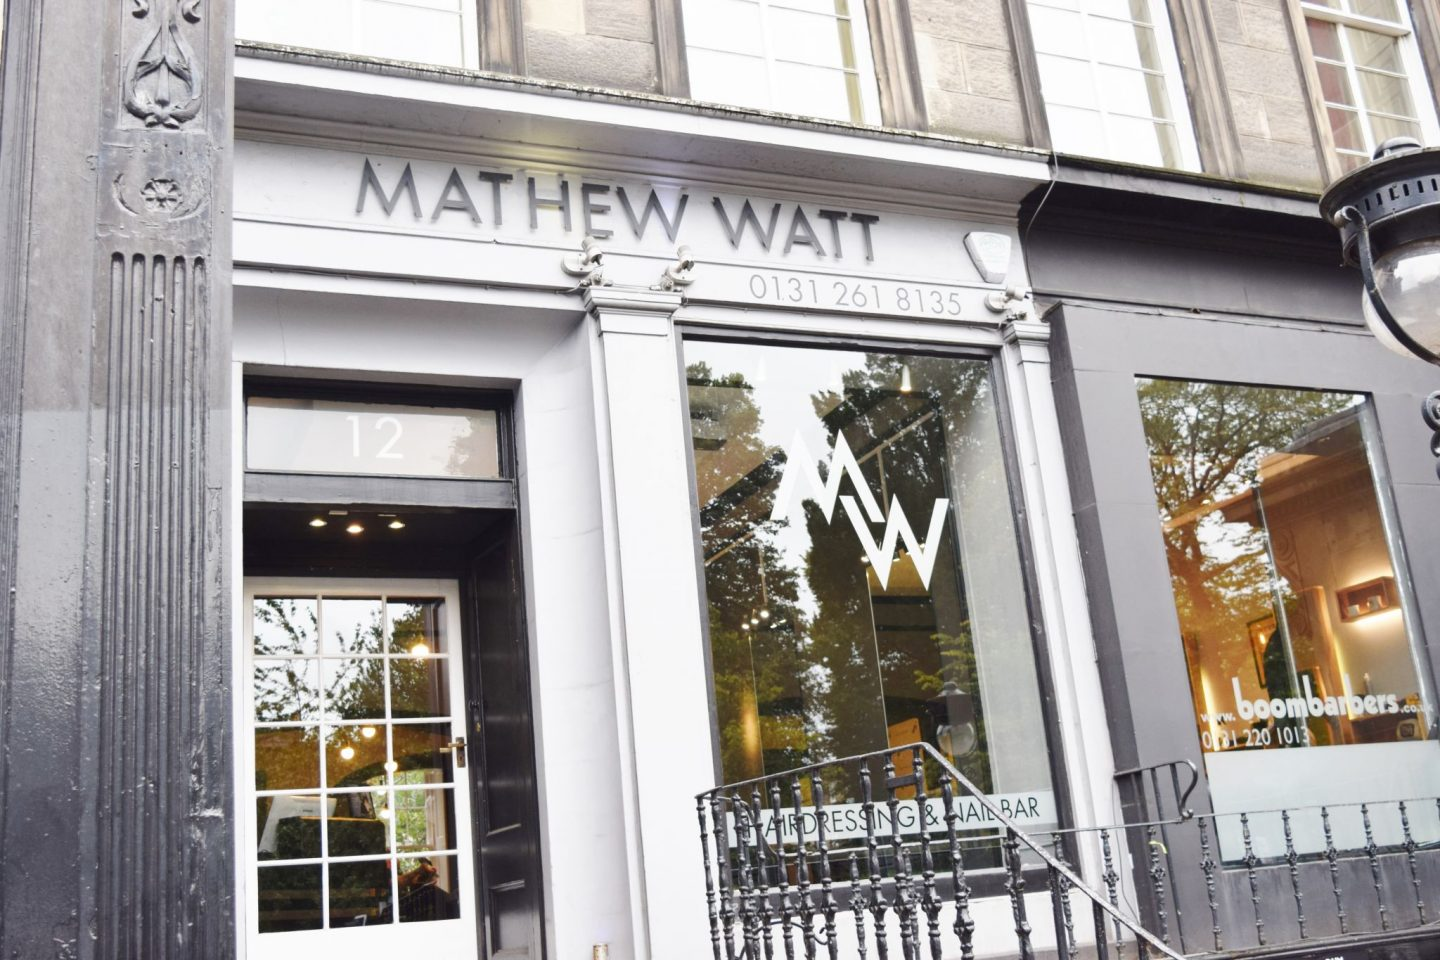 mathew watt hairdressing